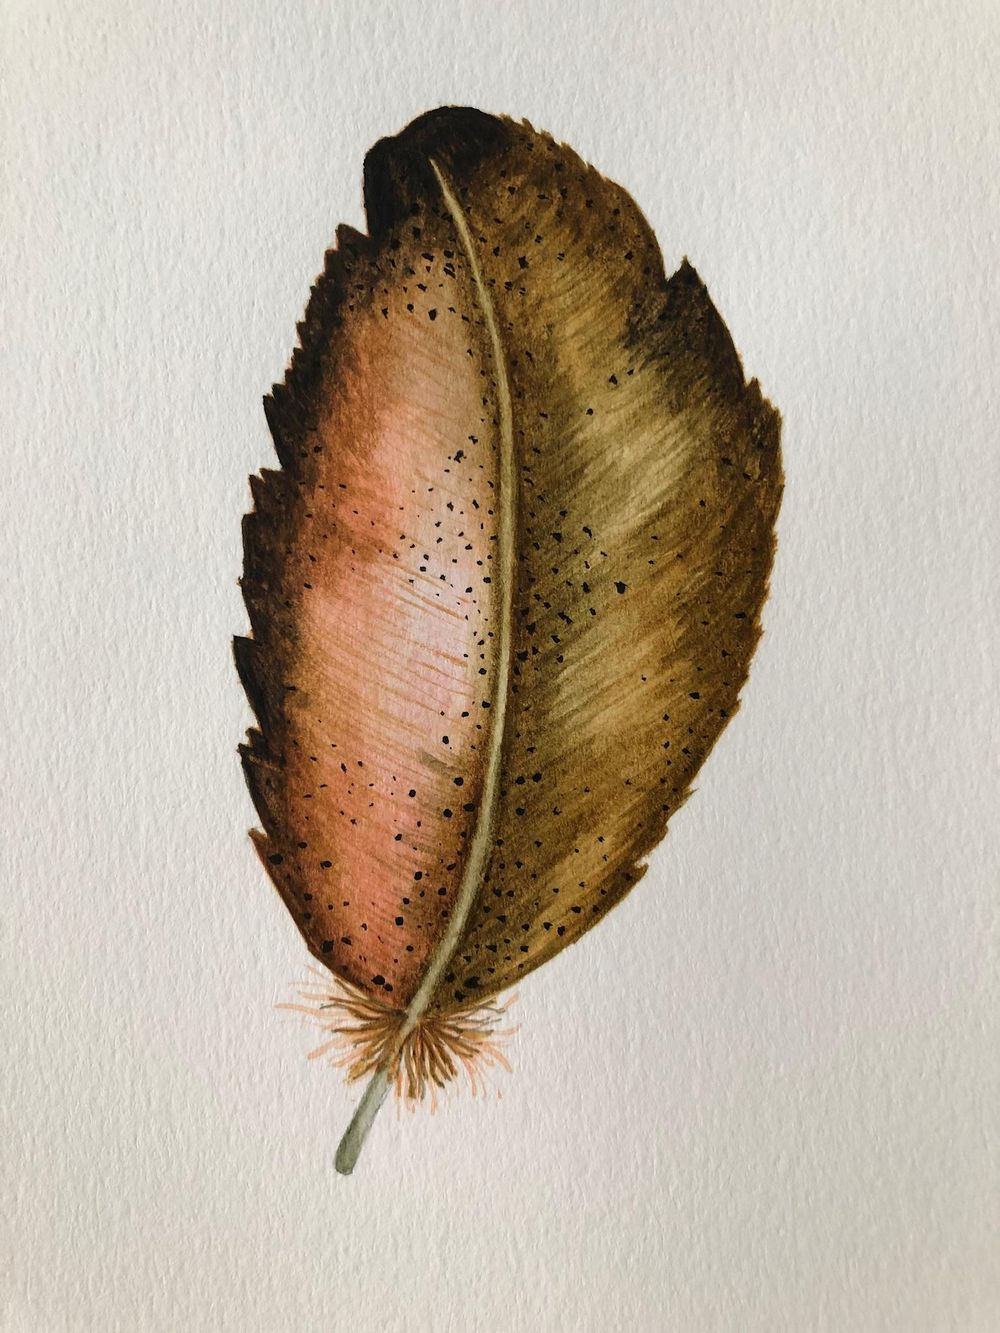 Painting Feathers - image 3 - student project